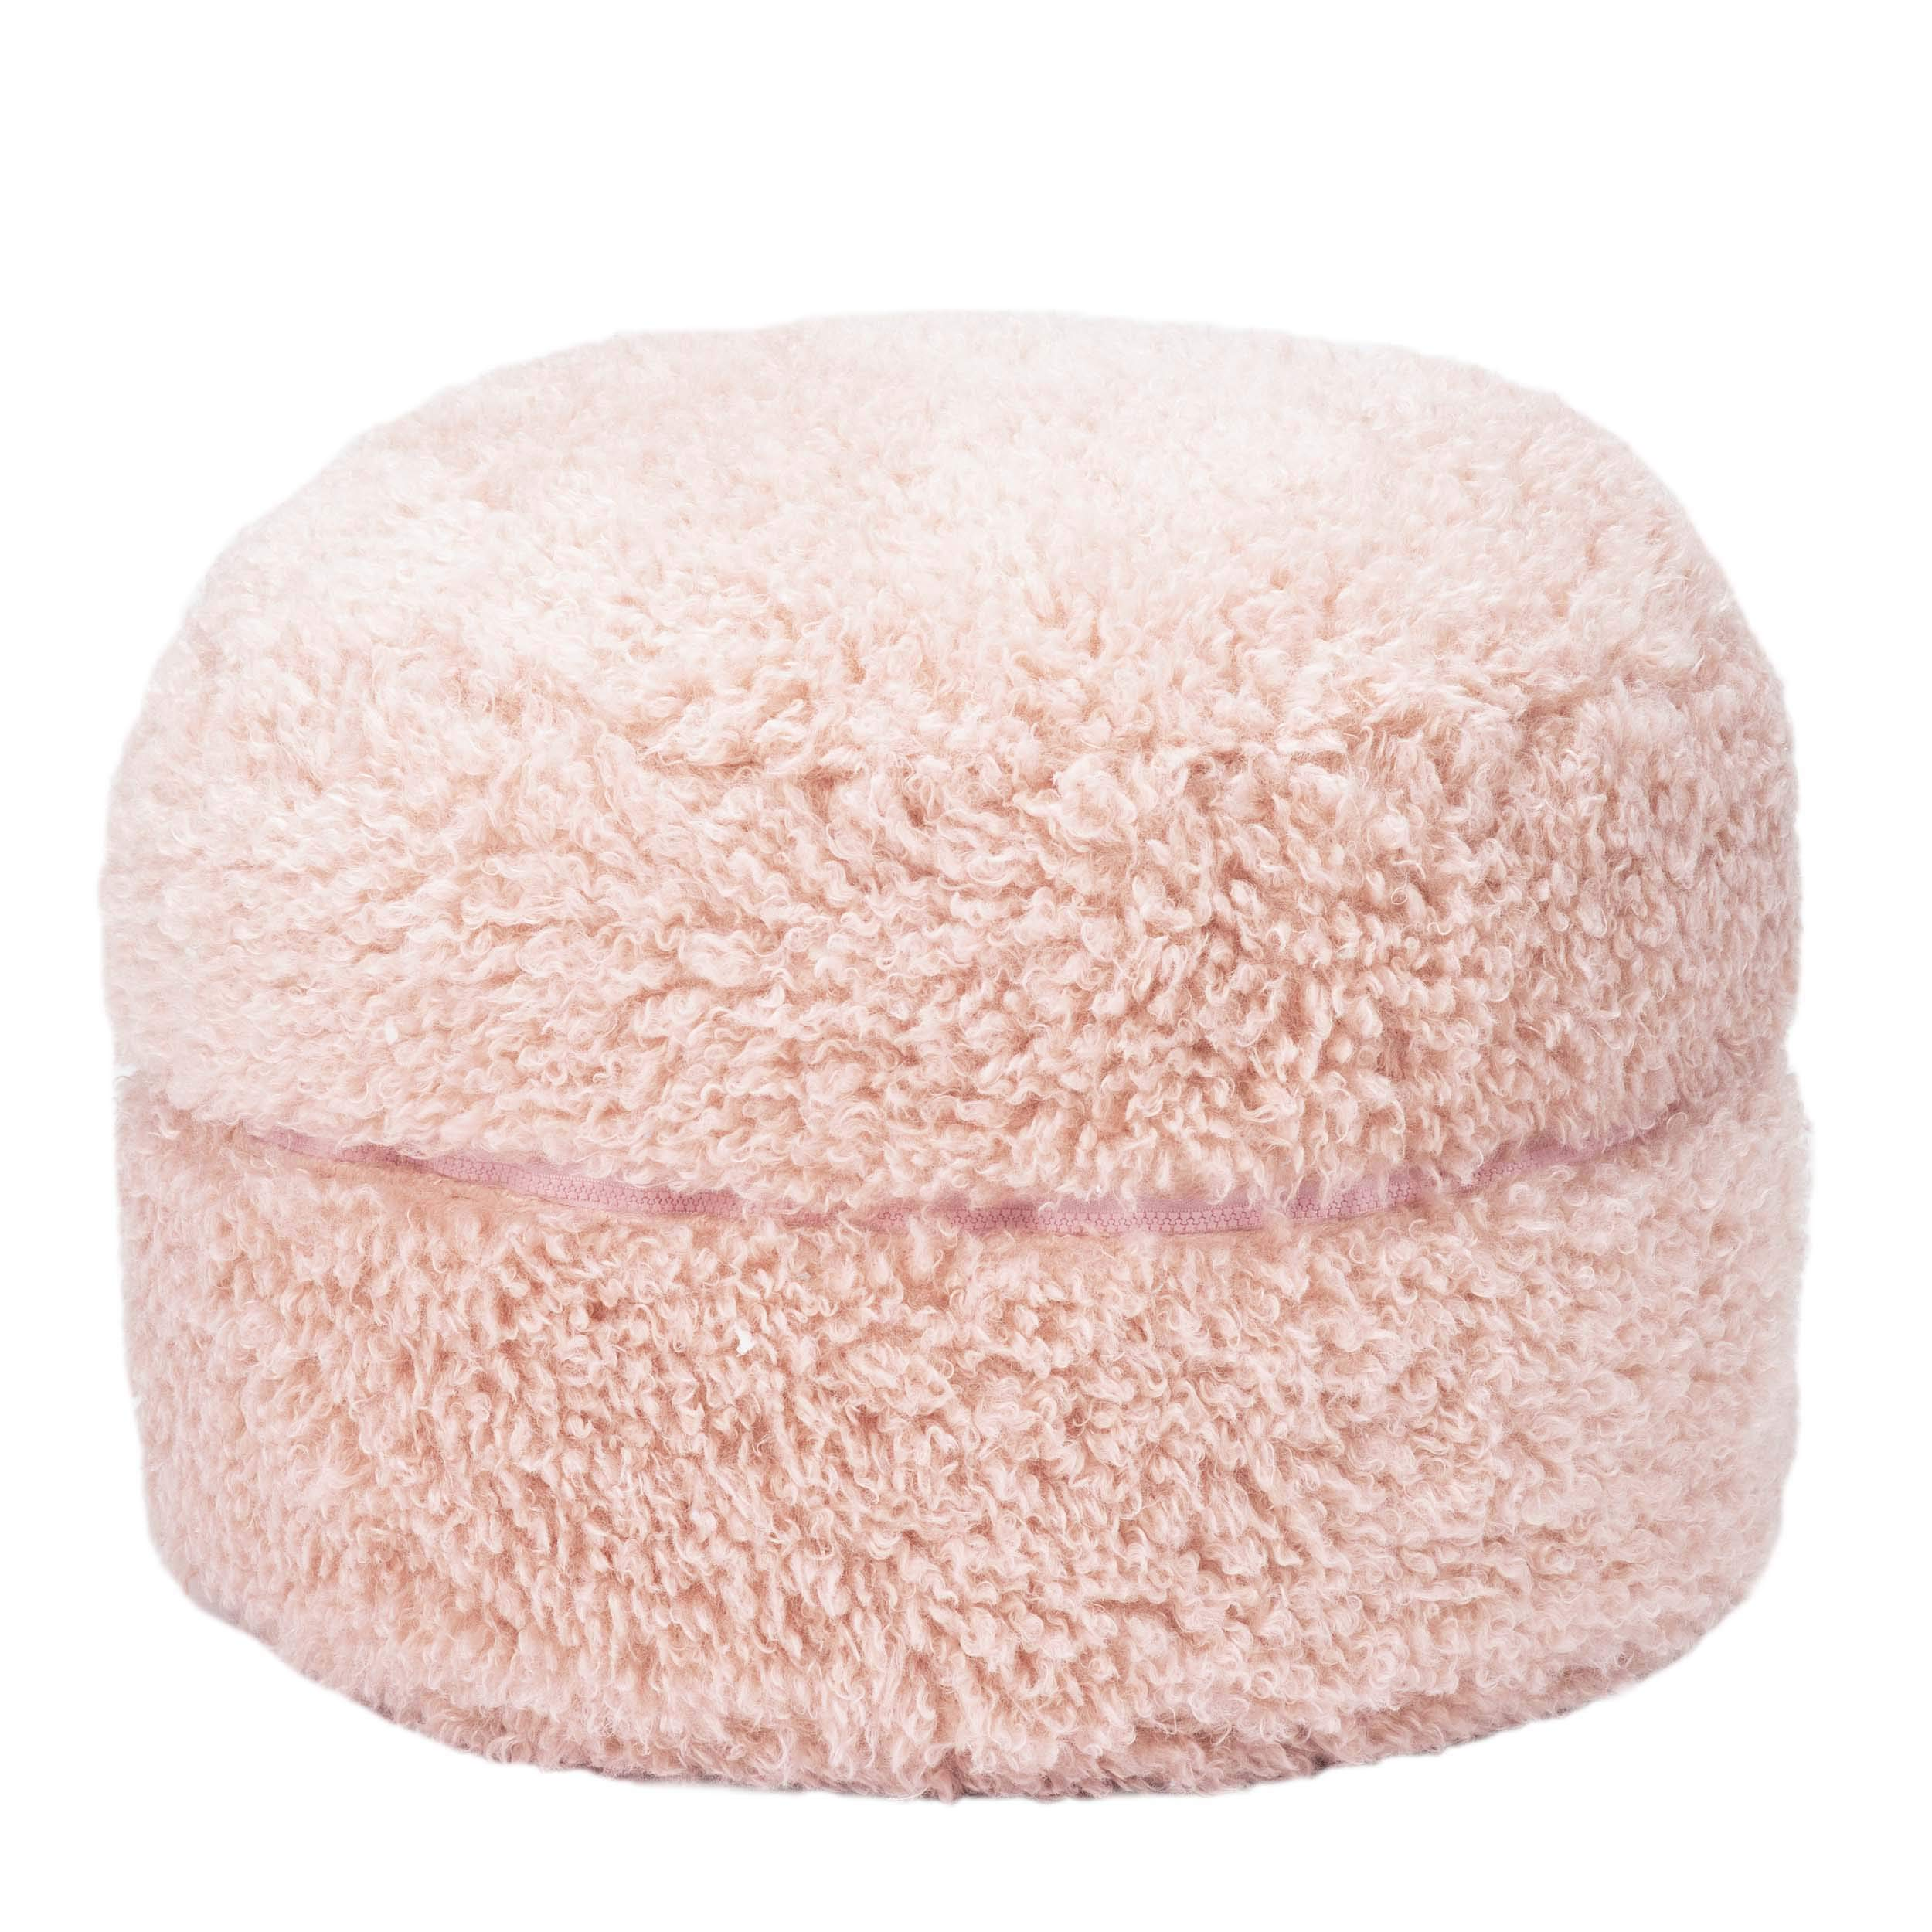 Mimish Poodle Faux Fur Storage Pouf for Kids -Kids Storage Ottoman - Great Kids Storage and Dorm Storage -Pale Lilac